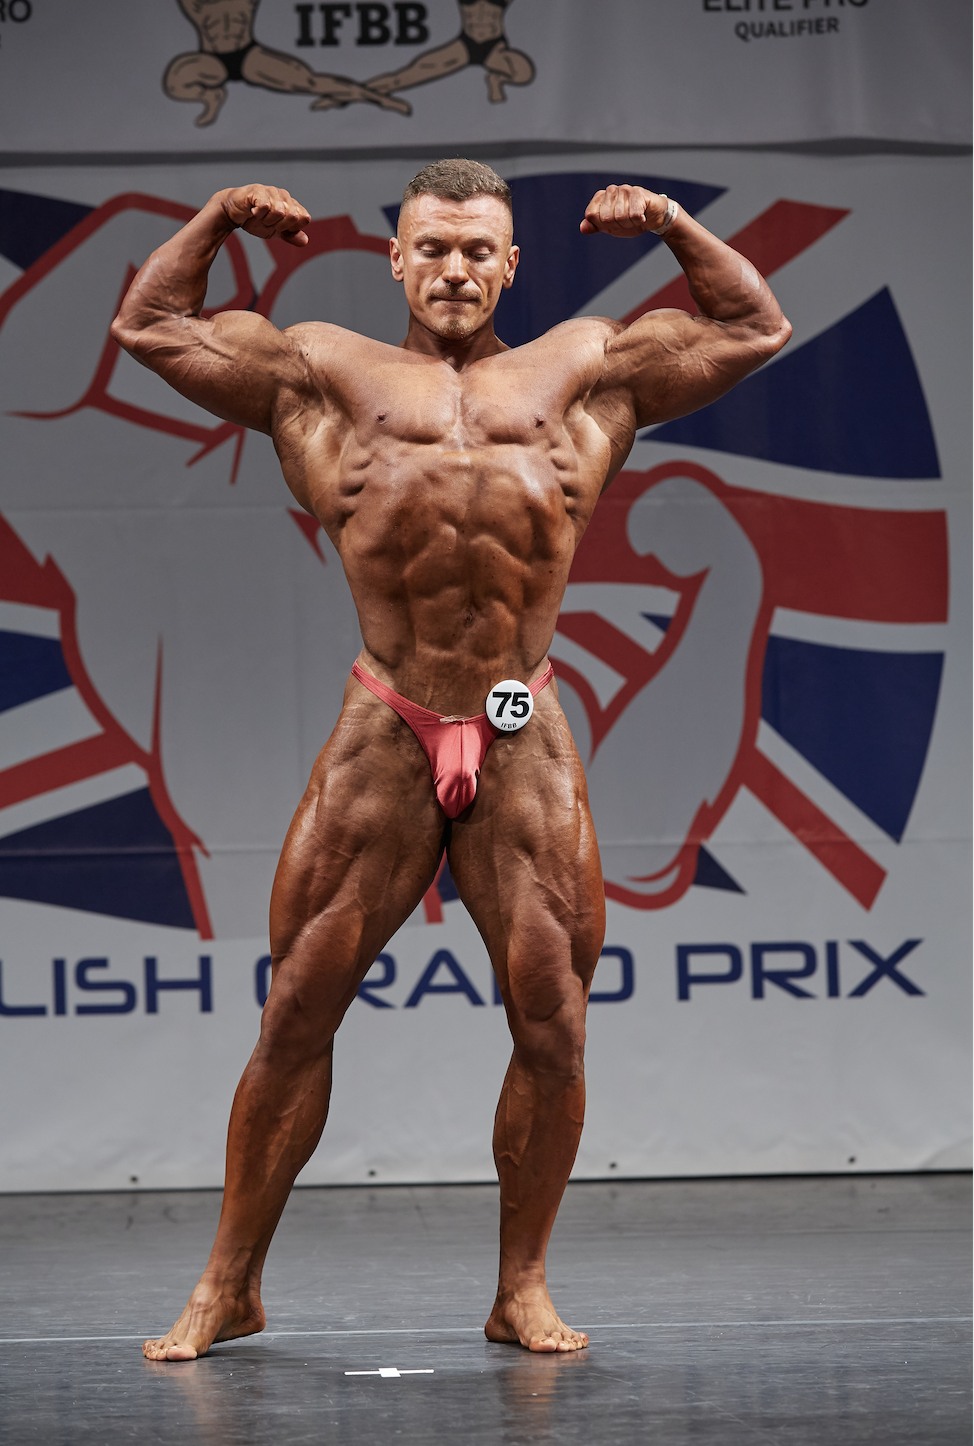 Besjan Osmani, over 100kg bodybuilding winner.